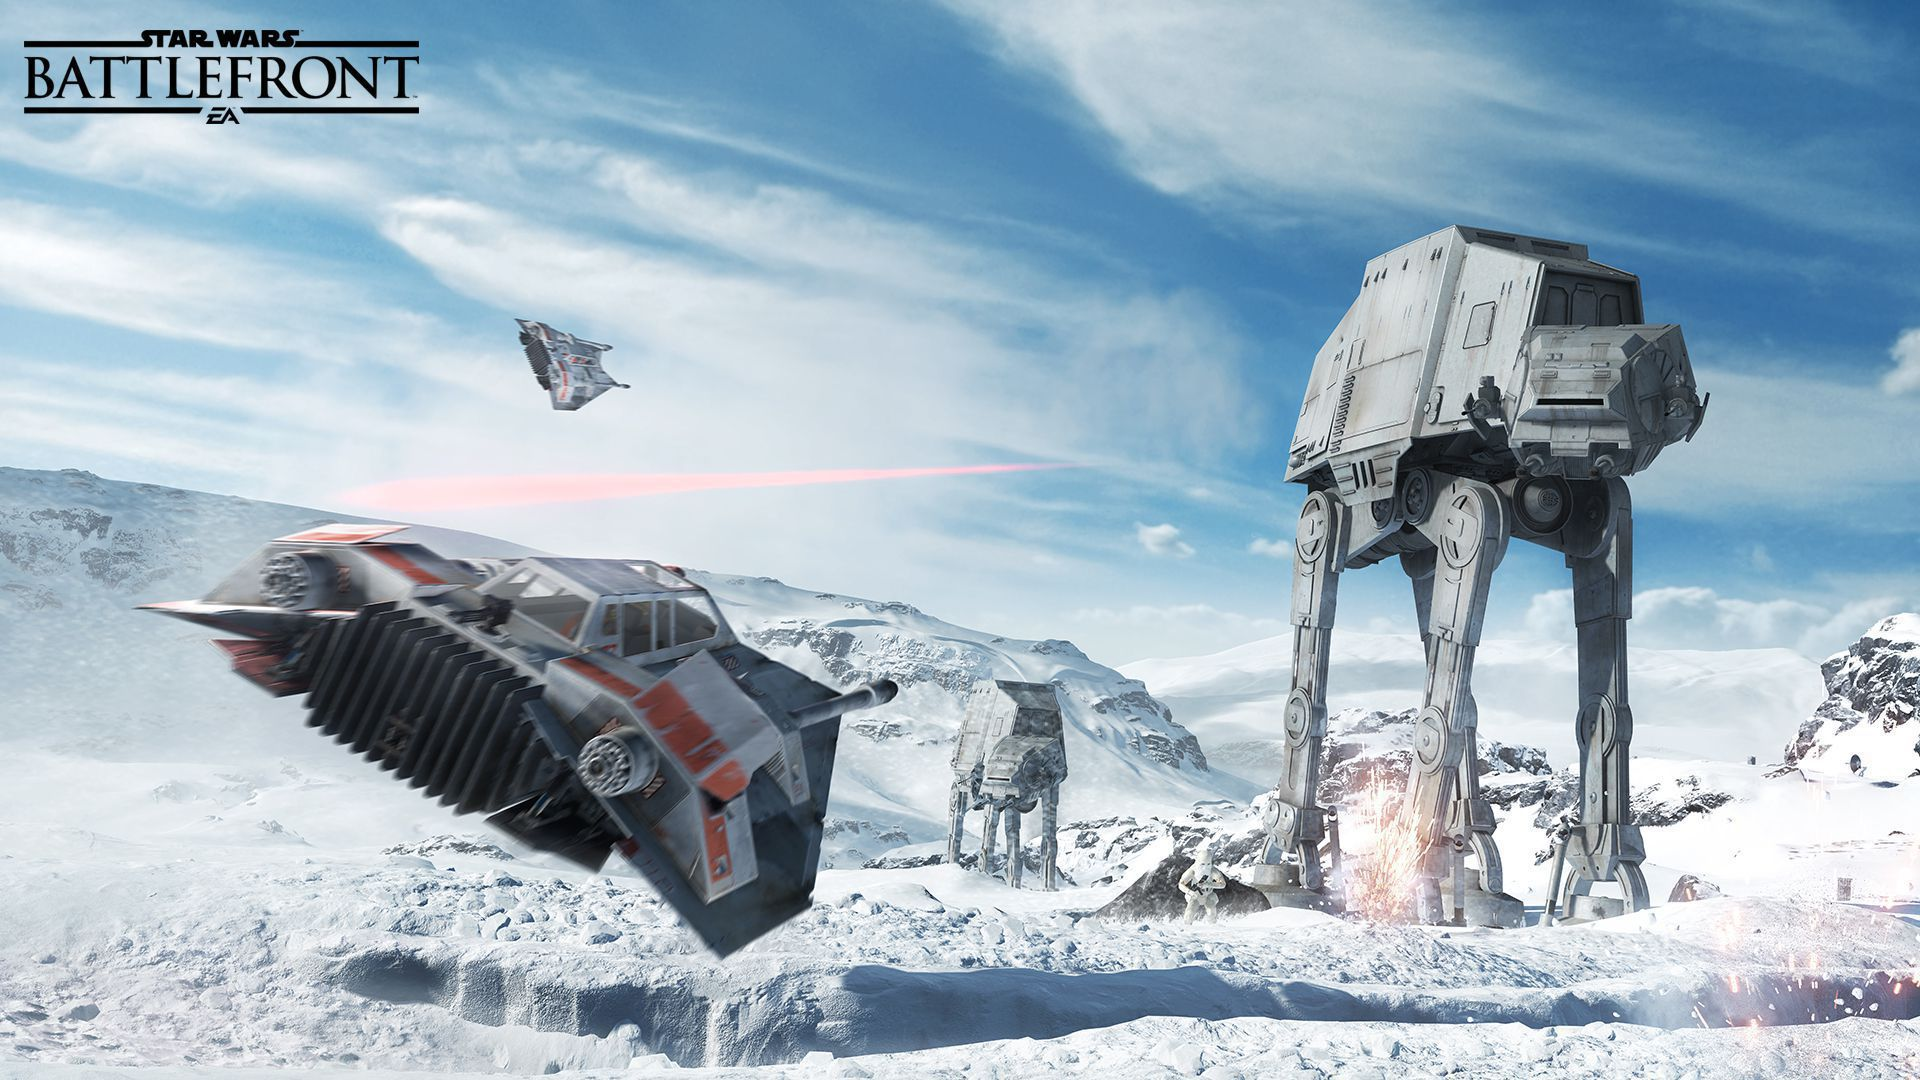 Star Wars Battlefront II High Quality Wallpapers